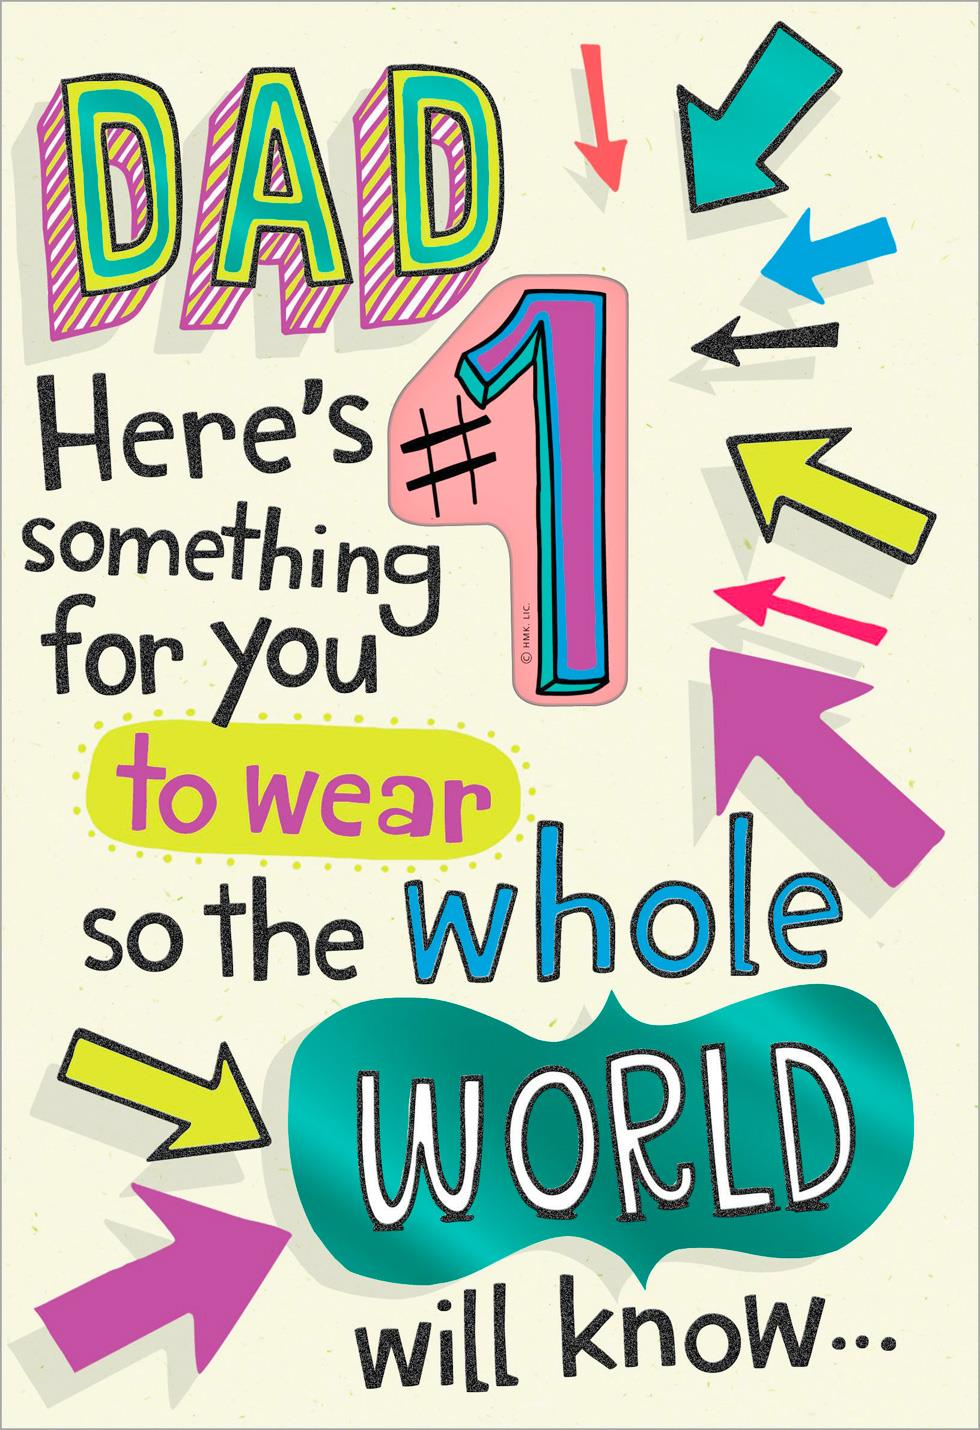 A 1 Daughter Funny Birthday Card With Button Pin For Dad Greeting